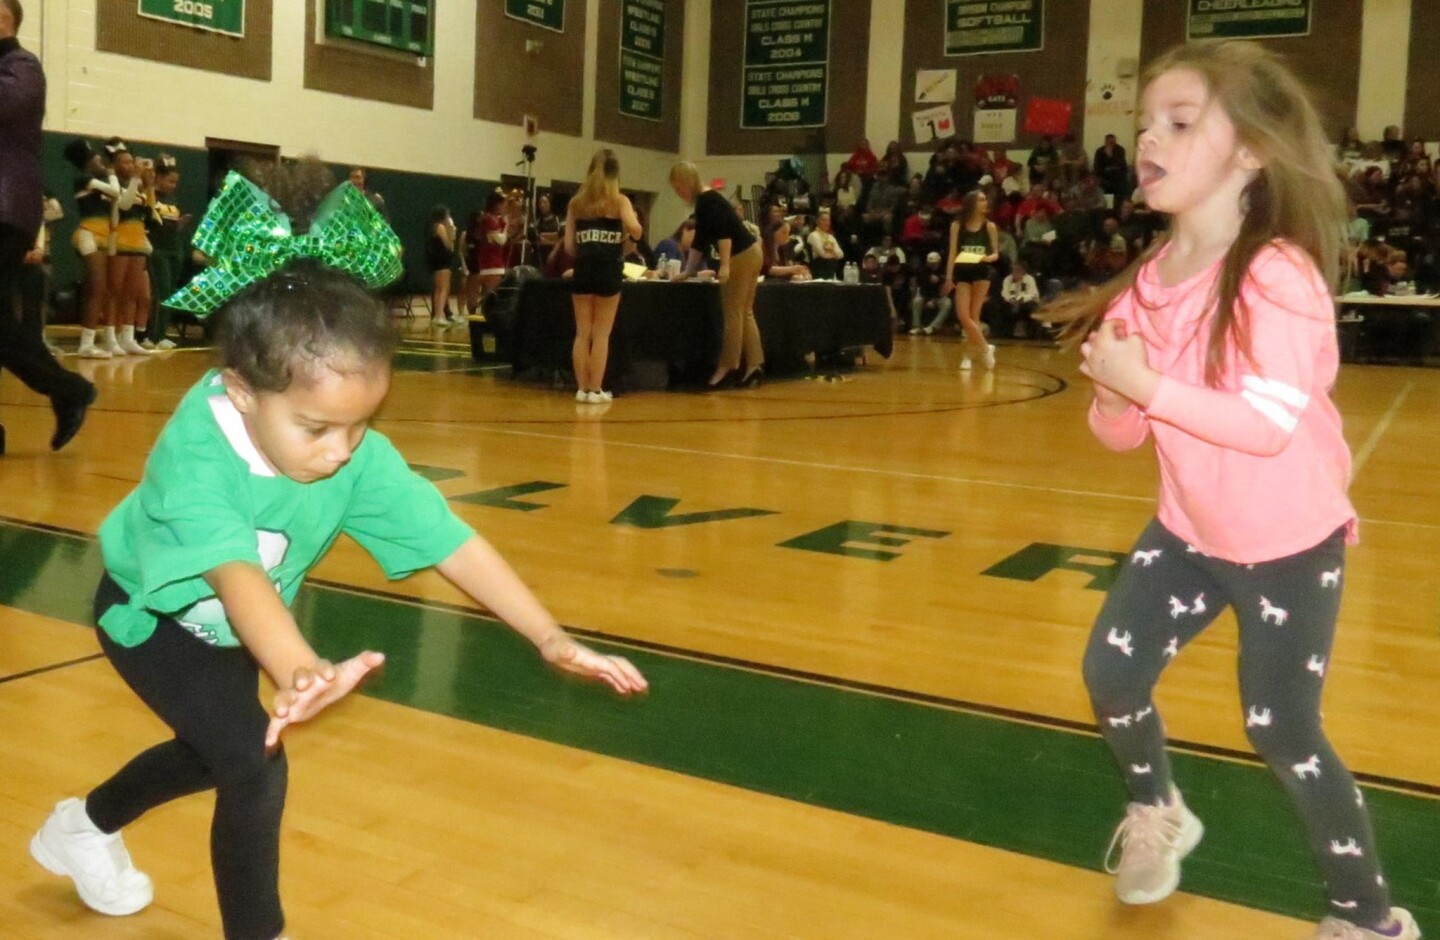 Budding cheerleaders Jaidyn, 5, and Shelby, 4, practice on the sidelines of the Wolverines Pride cheer competition.